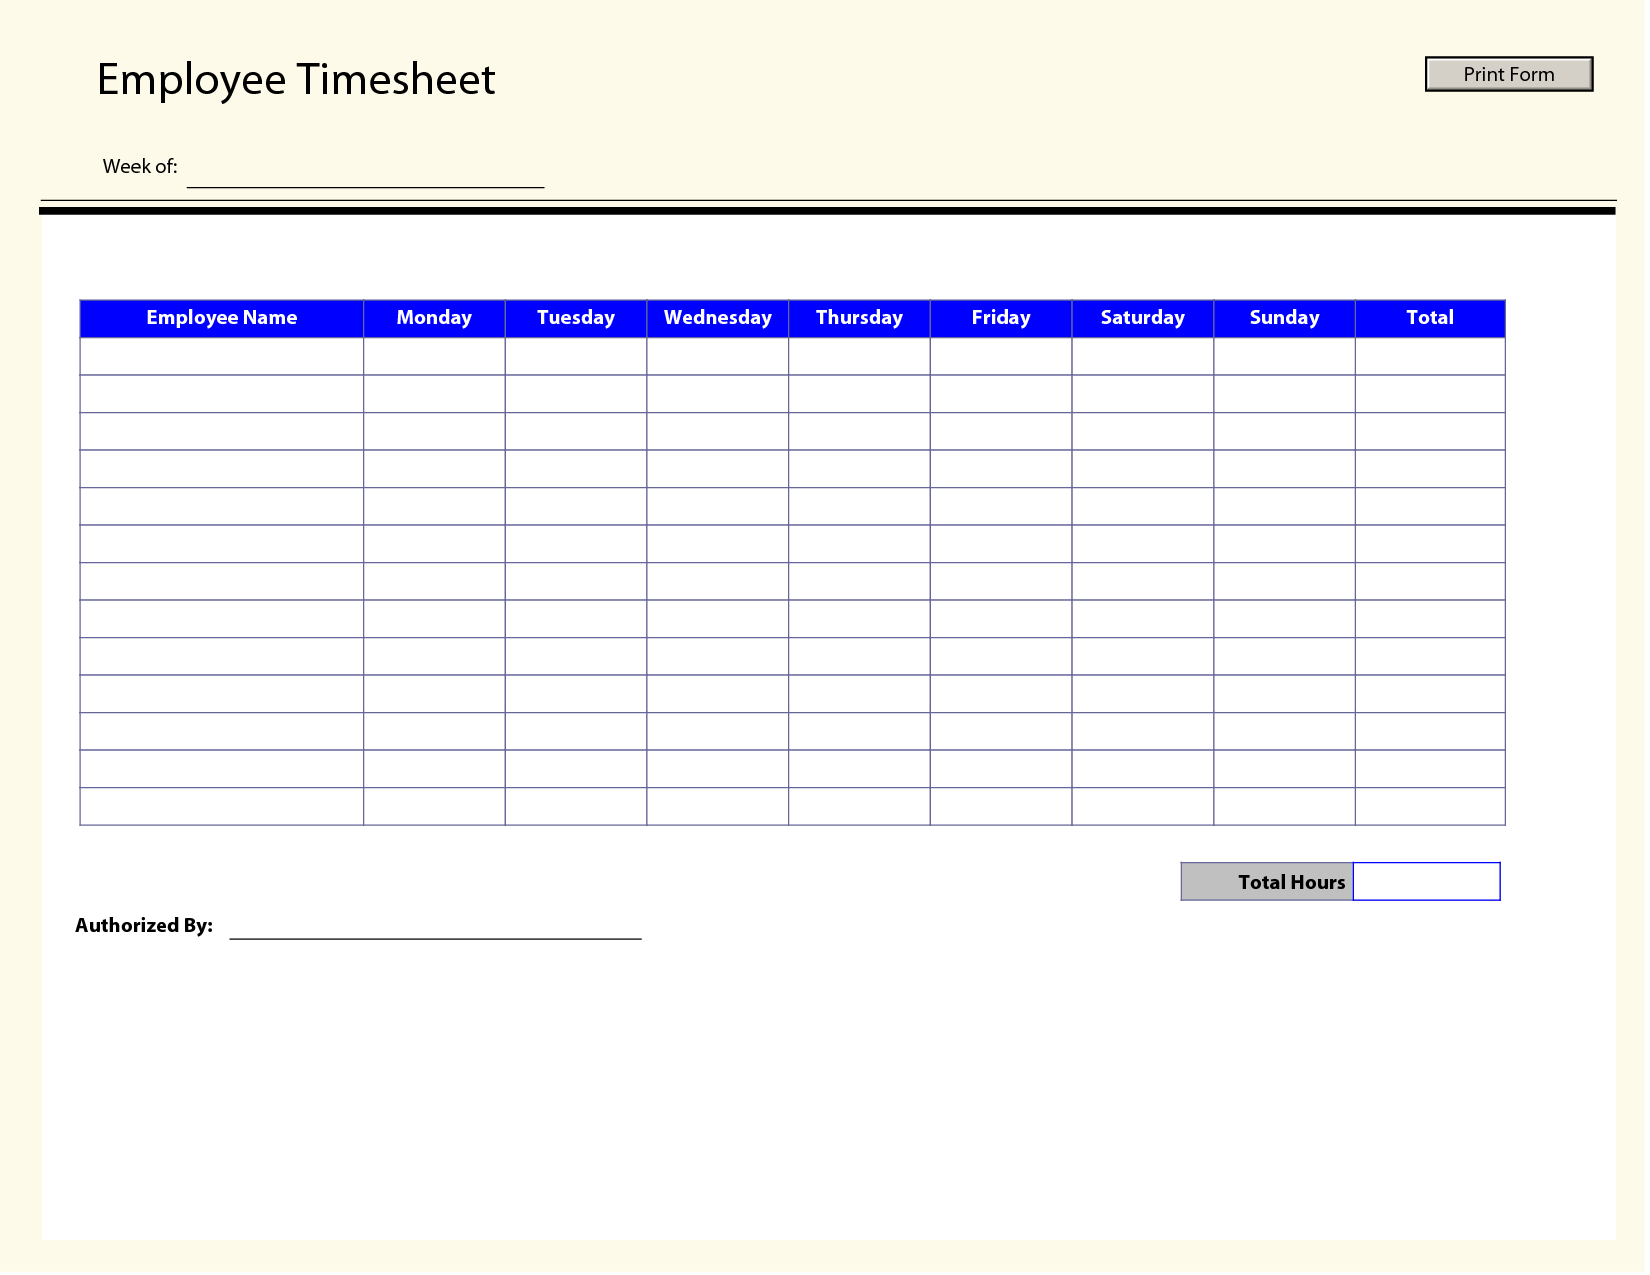 Blank Employee Timesheet Template | Management Templates Inside Weekly Time Card Template Free